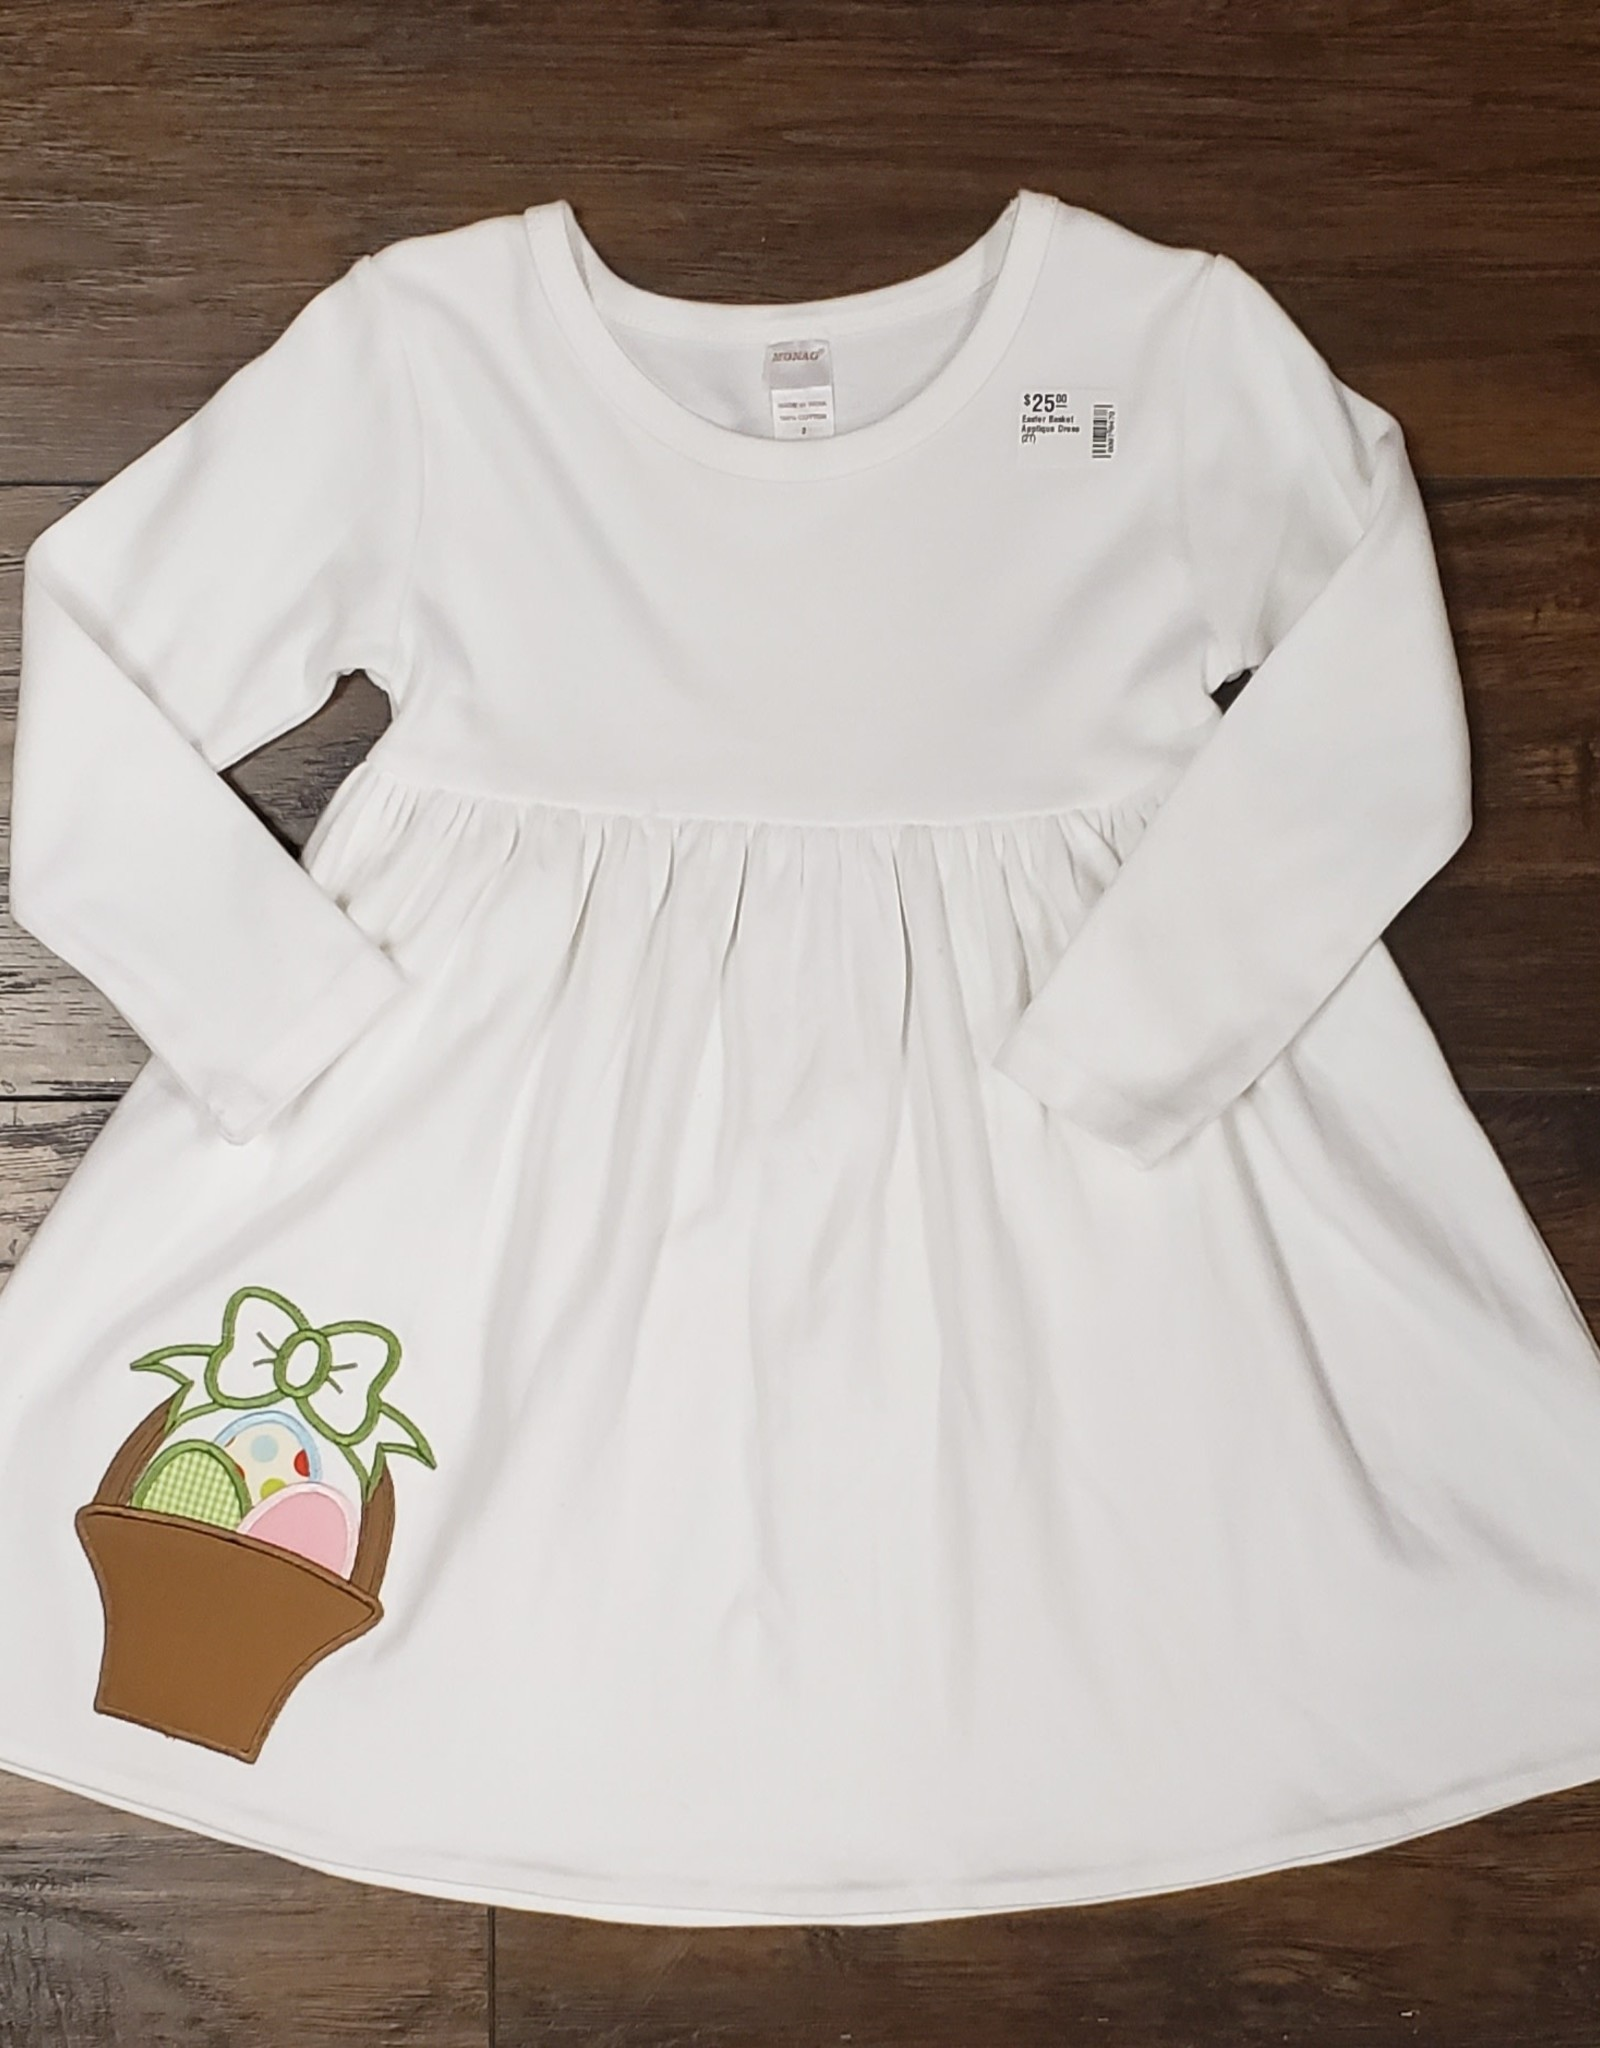 Easter Basket Applique Dress (2T)